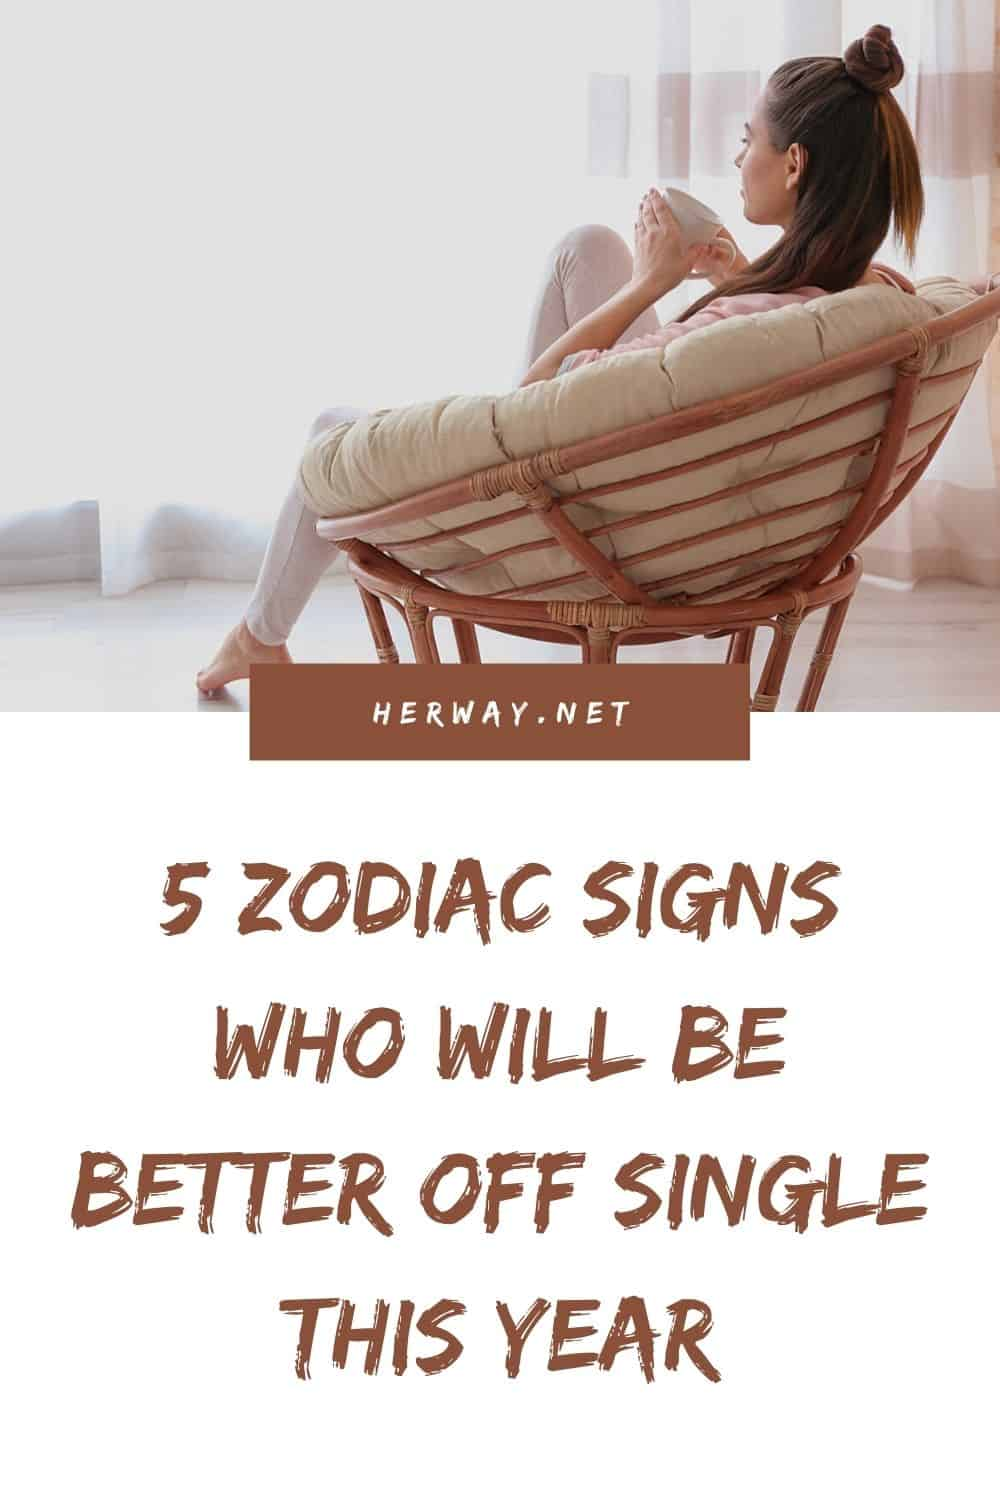 5 Zodiac Signs Who Will Be Better Off Single This Year